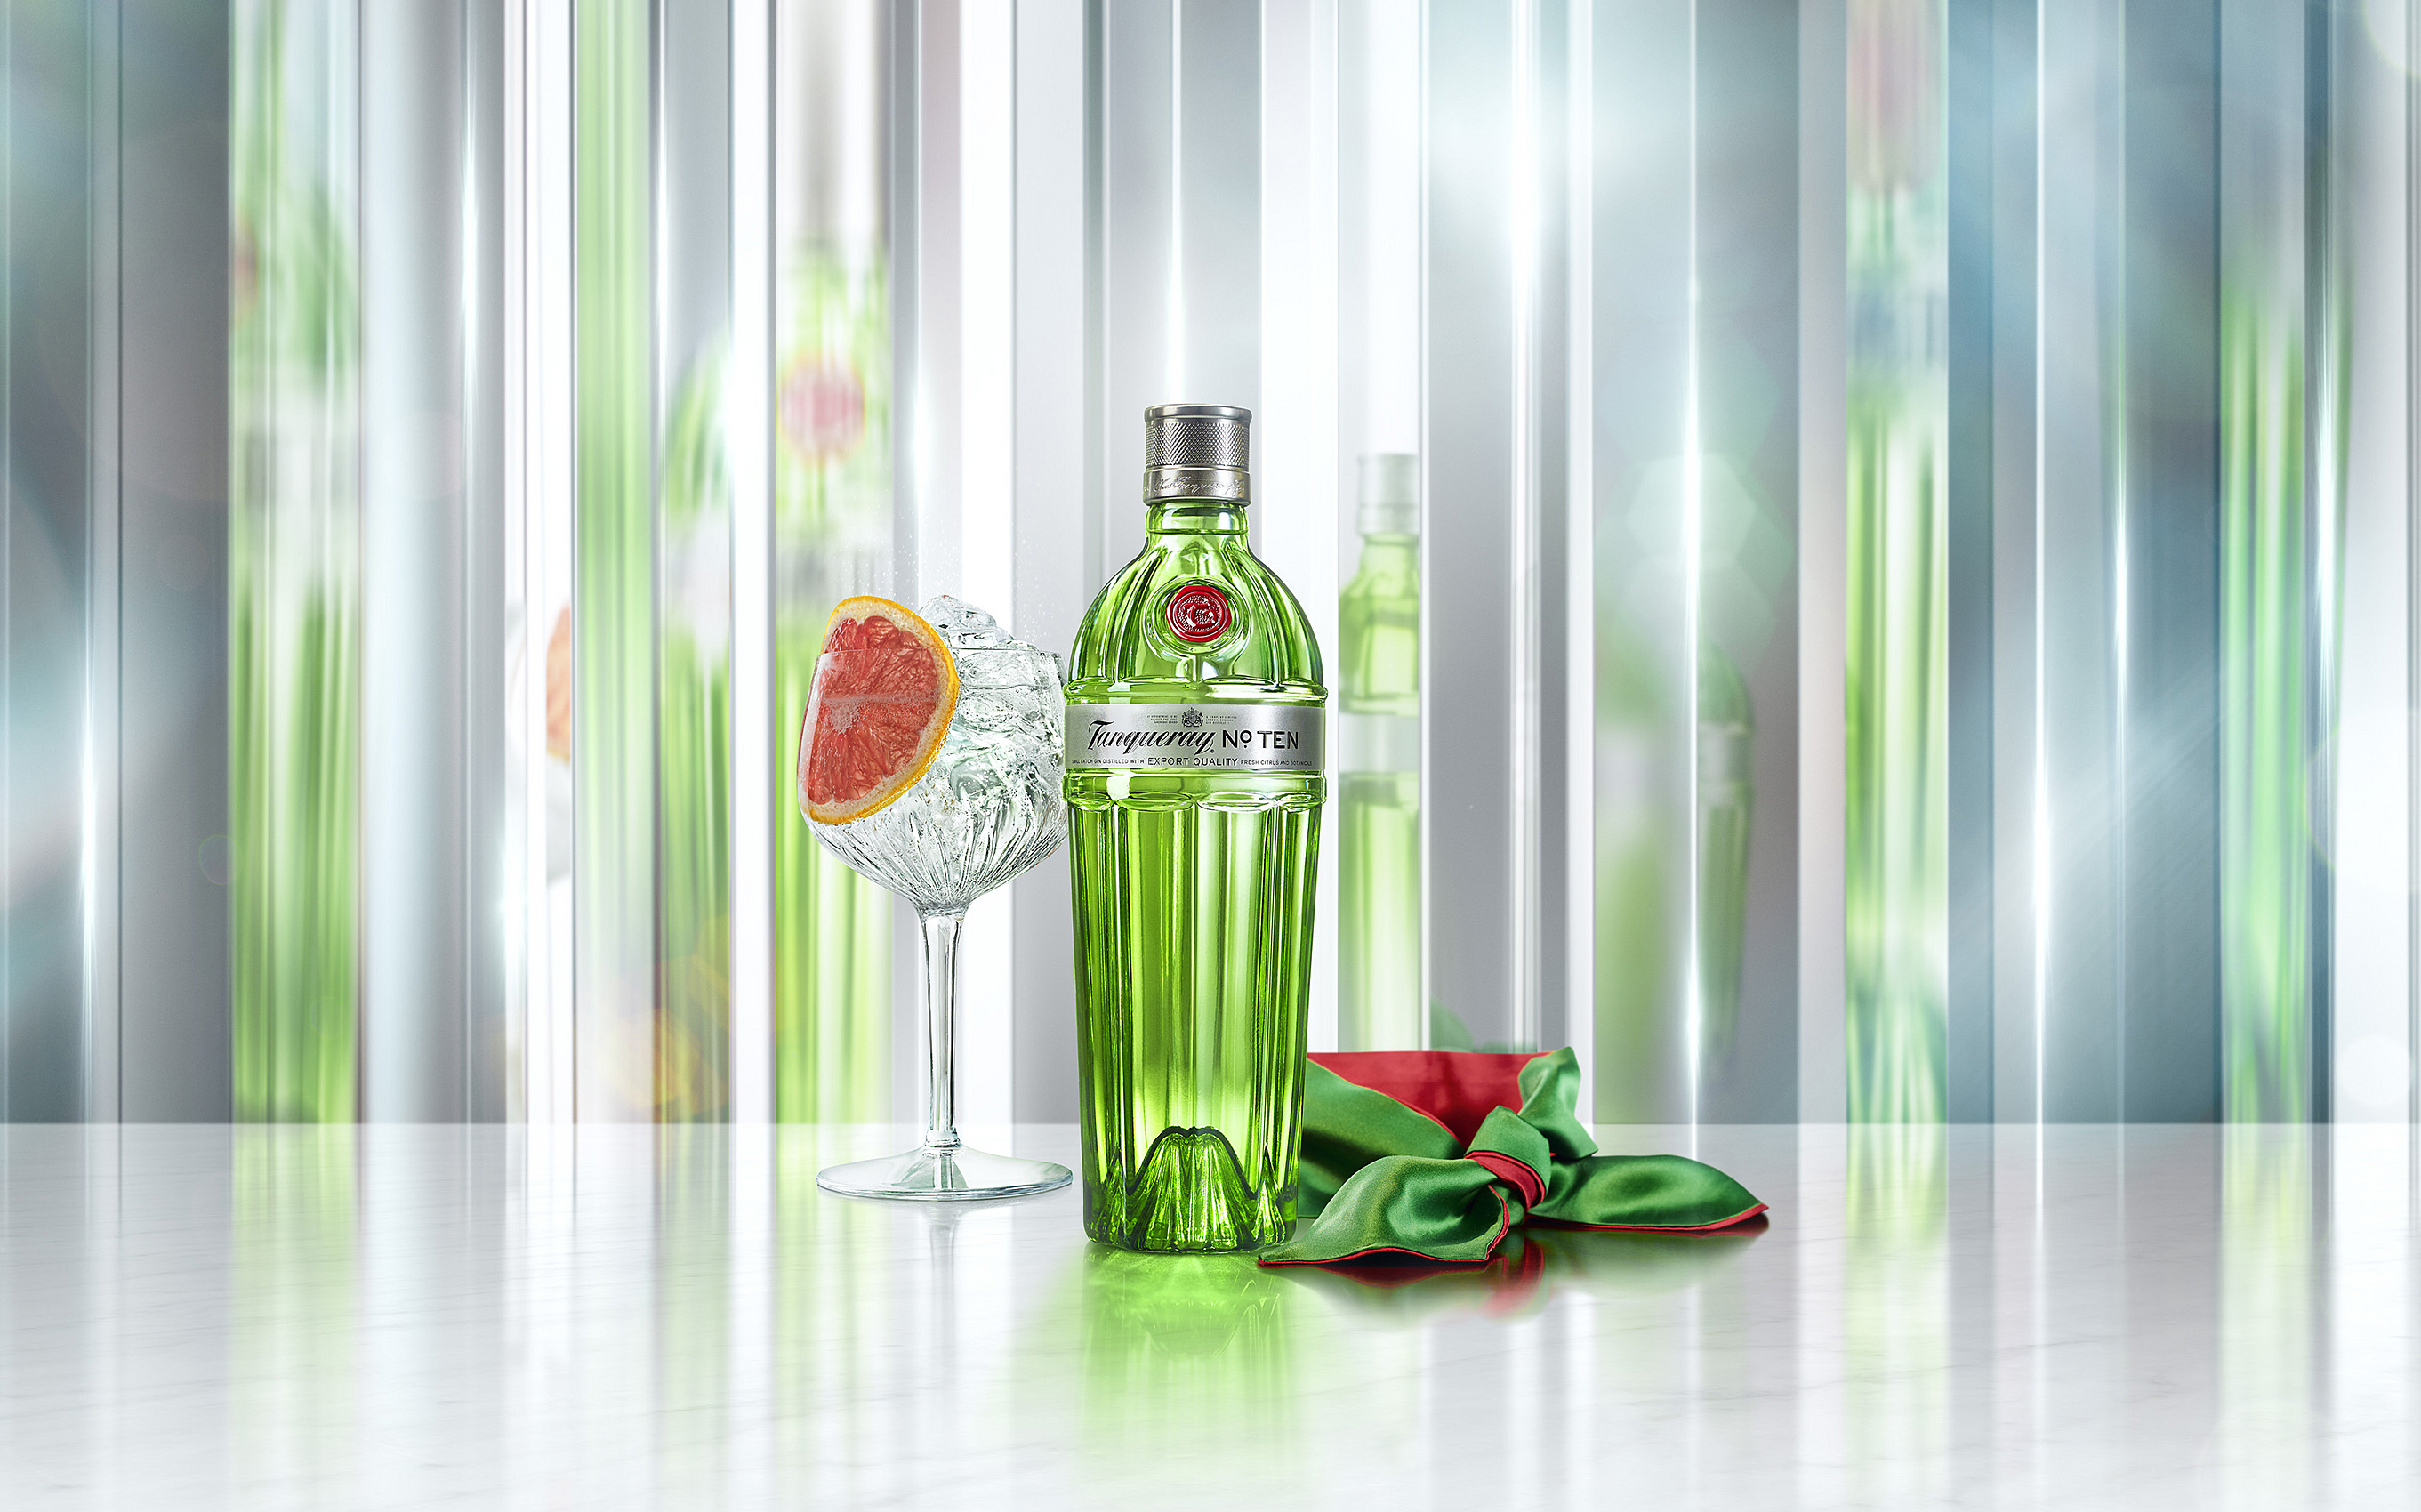 T10_Tanqueray_Potential_Master_0012_03c